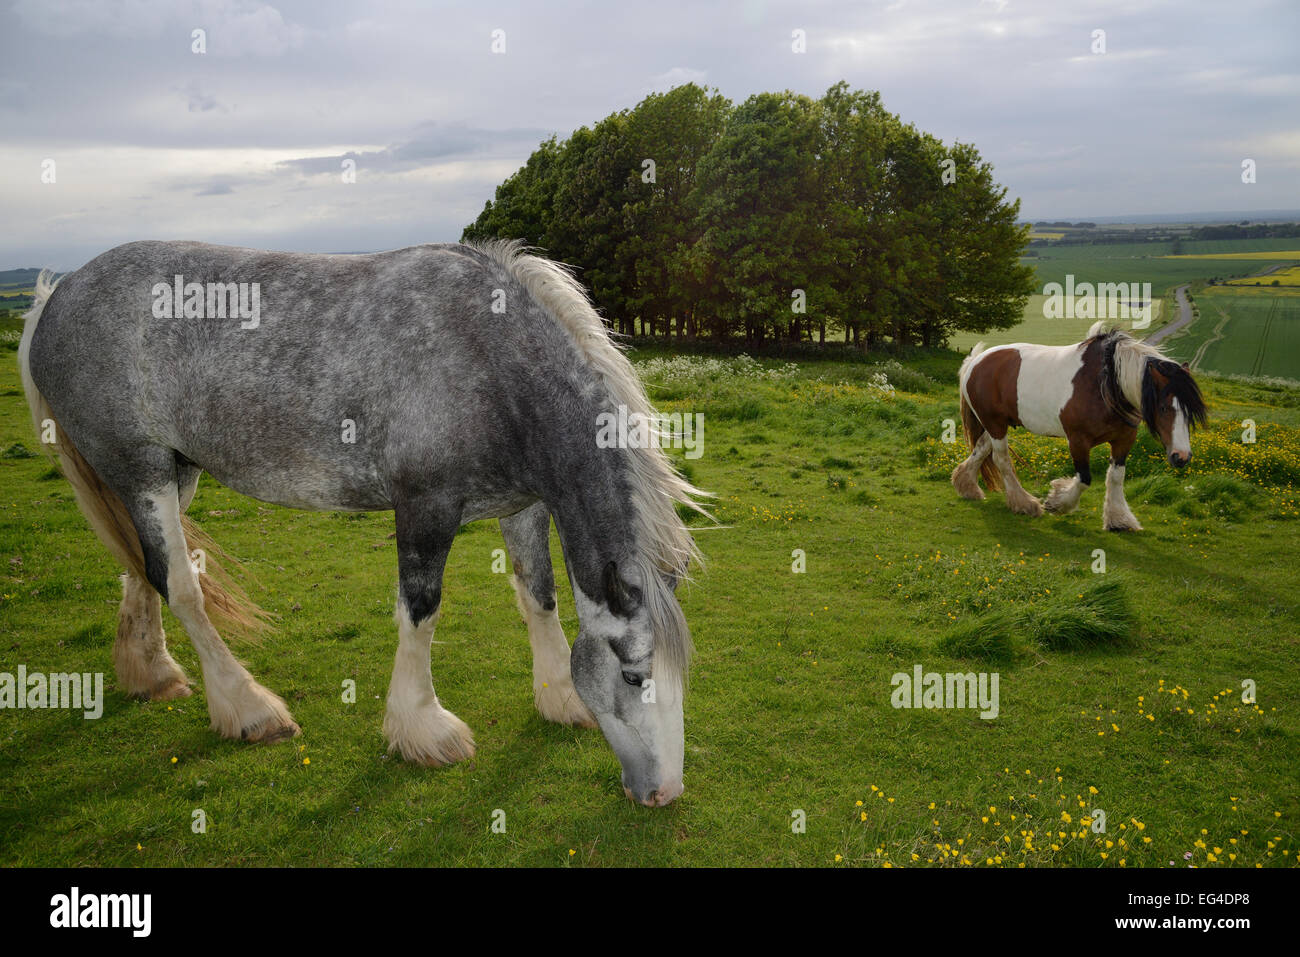 Two Irish Gypsy cob mares (Equus caballus) one dapple grey - grazing one piebald - walking on rough pastureland - Stock Image